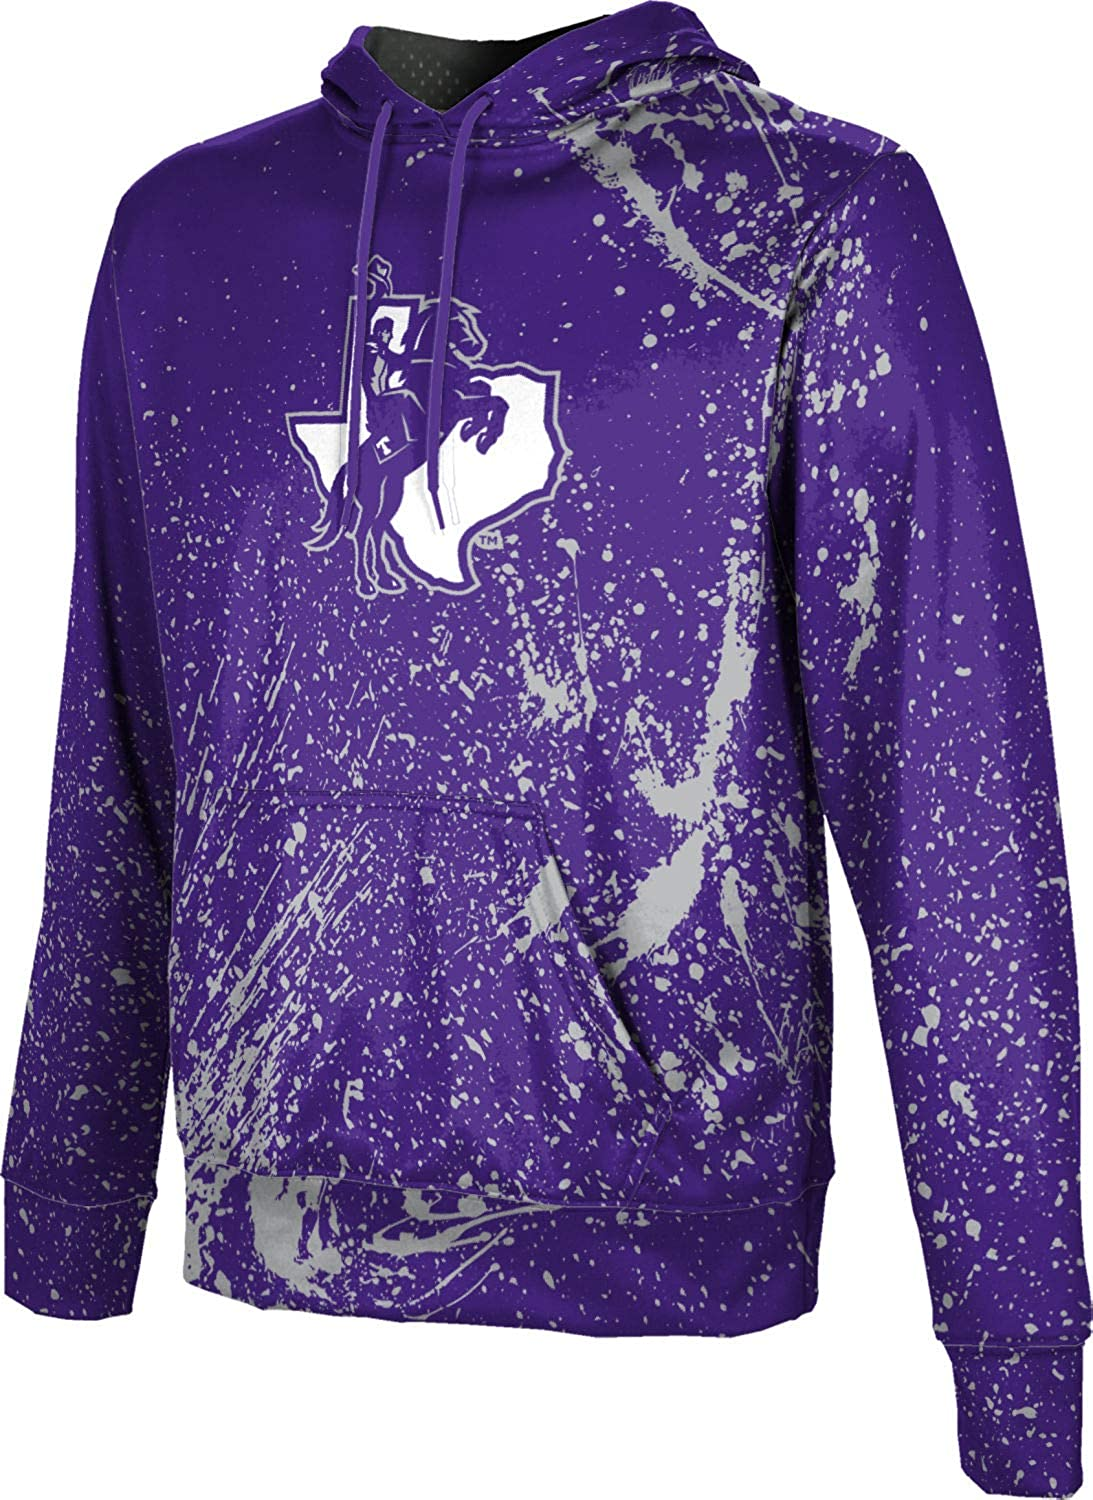 ProSphere Tarleton State University Pullover Schoo Hoodie Boys' Japan's largest Free Shipping Cheap Bargain Gift assortment